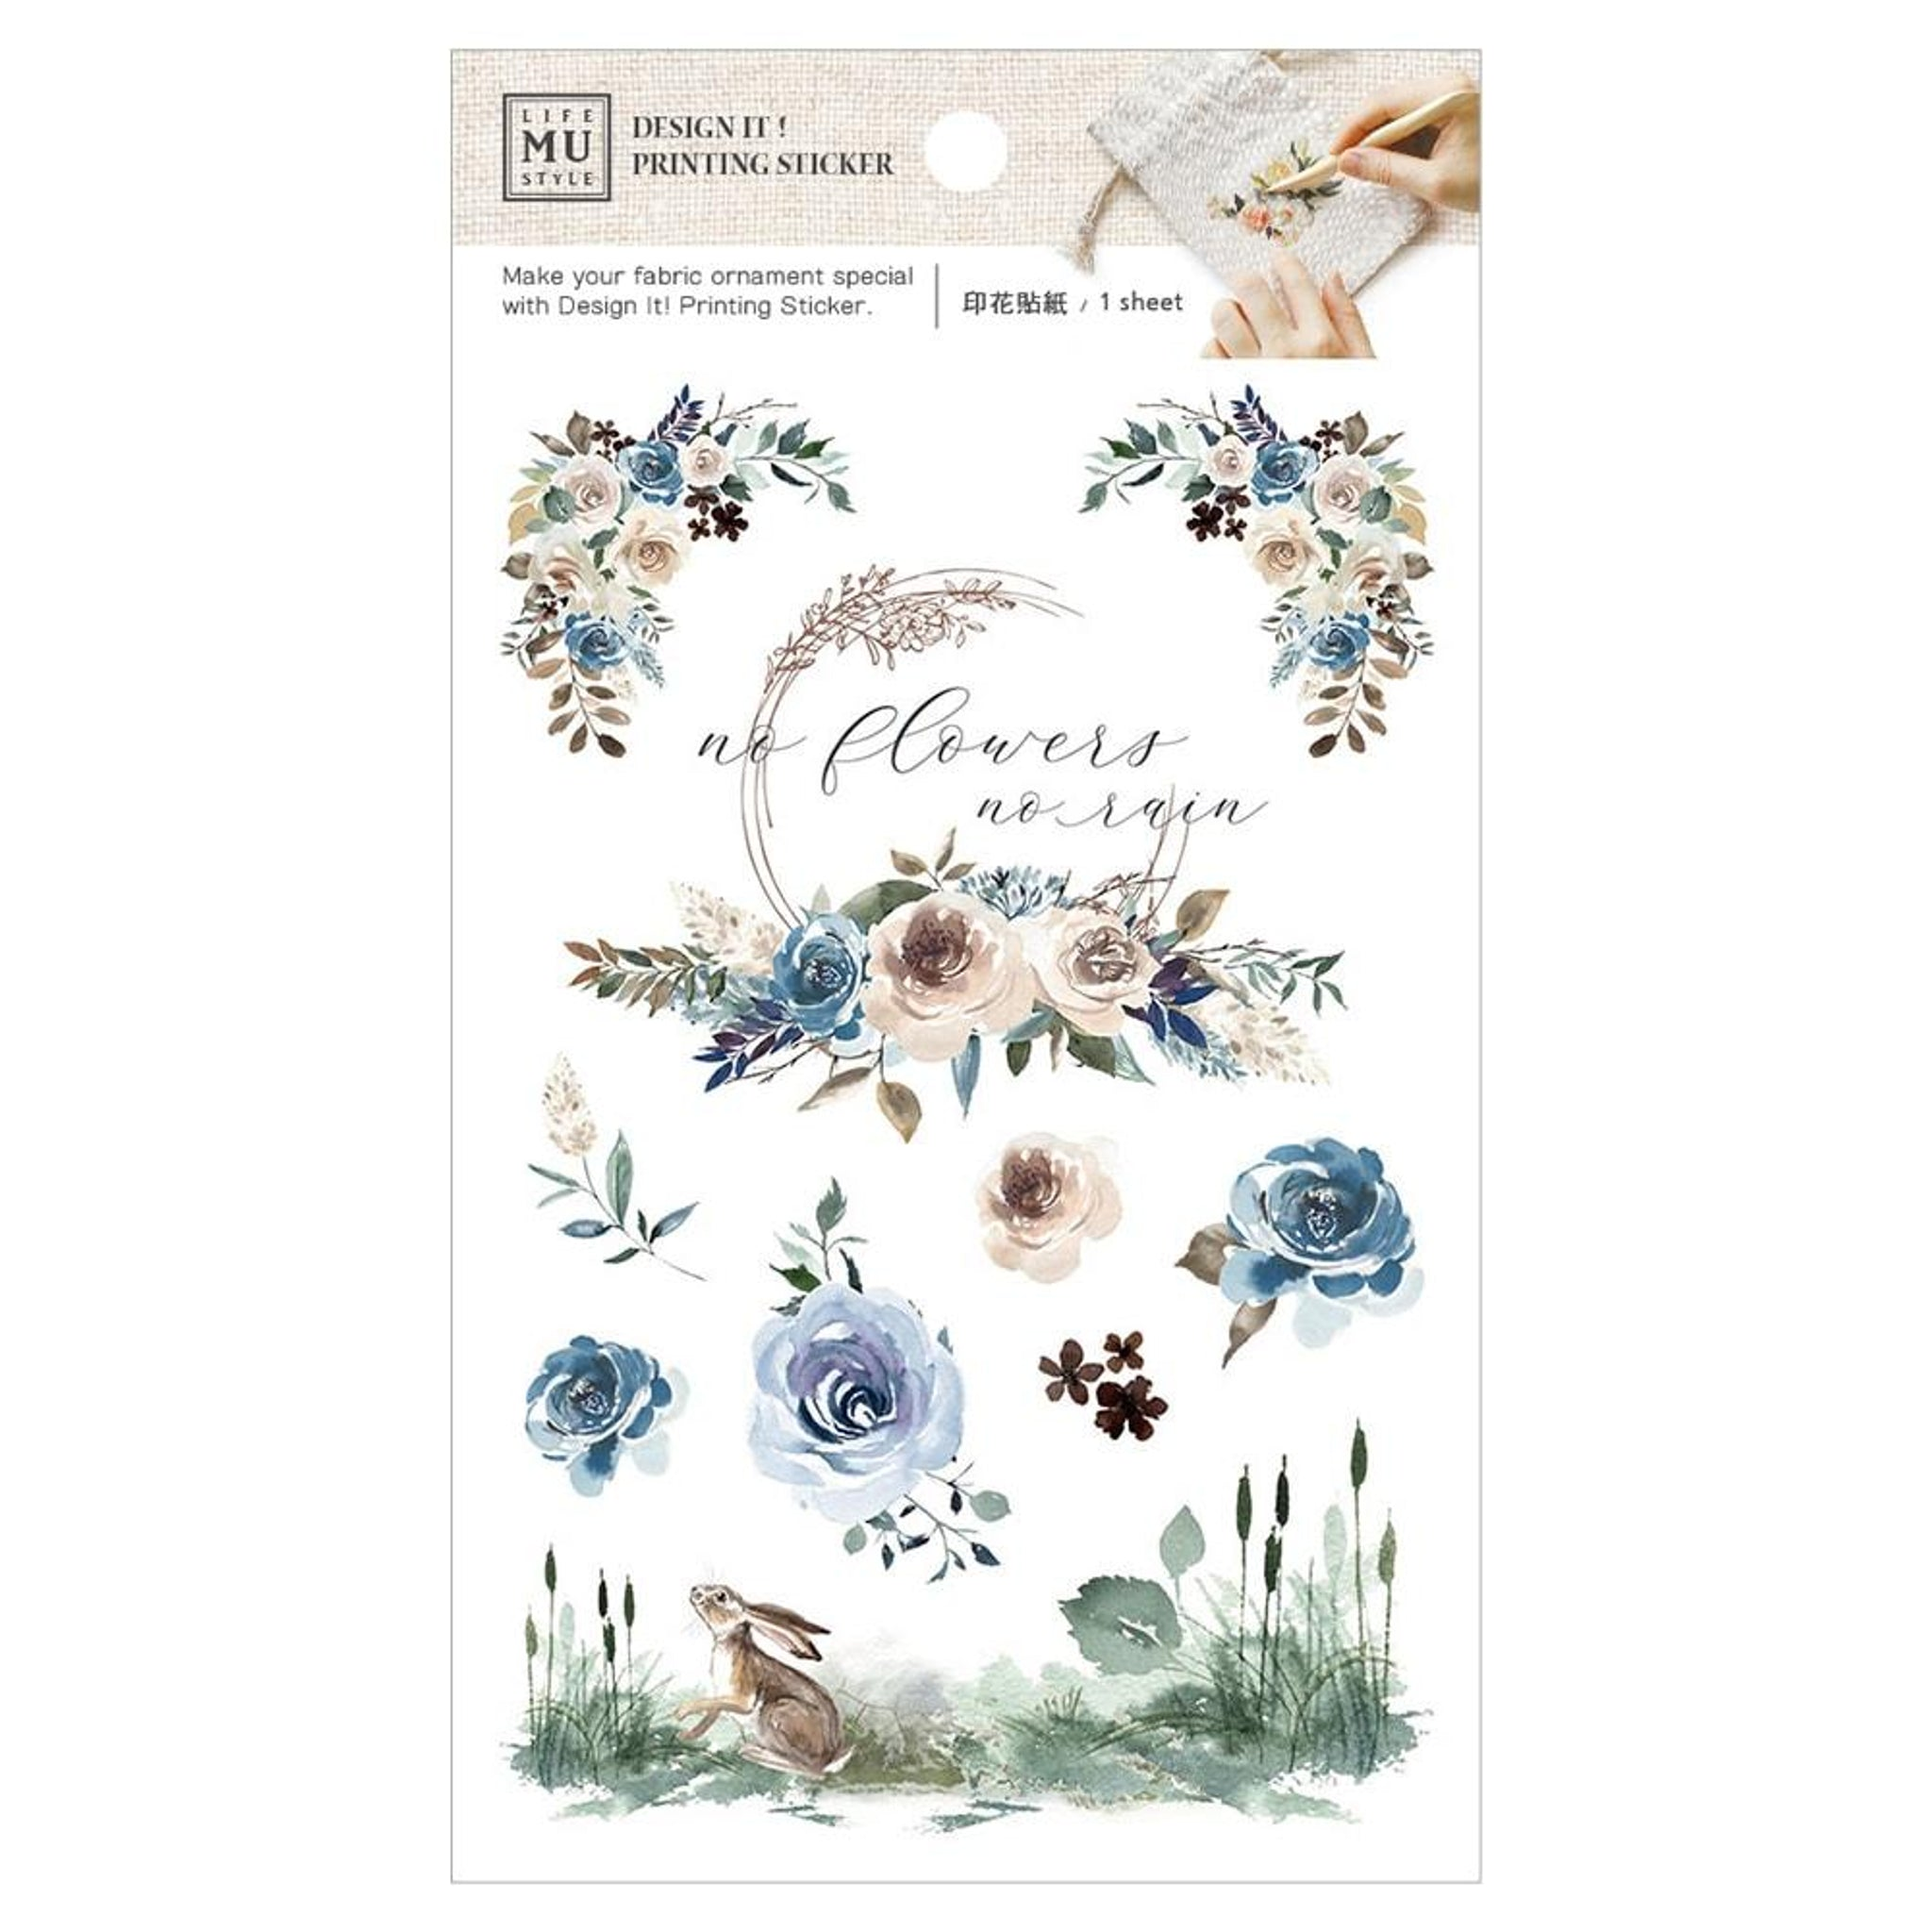 MU Craft Printing Sticker & Pouch Set Blue Roses And Rabbit 007